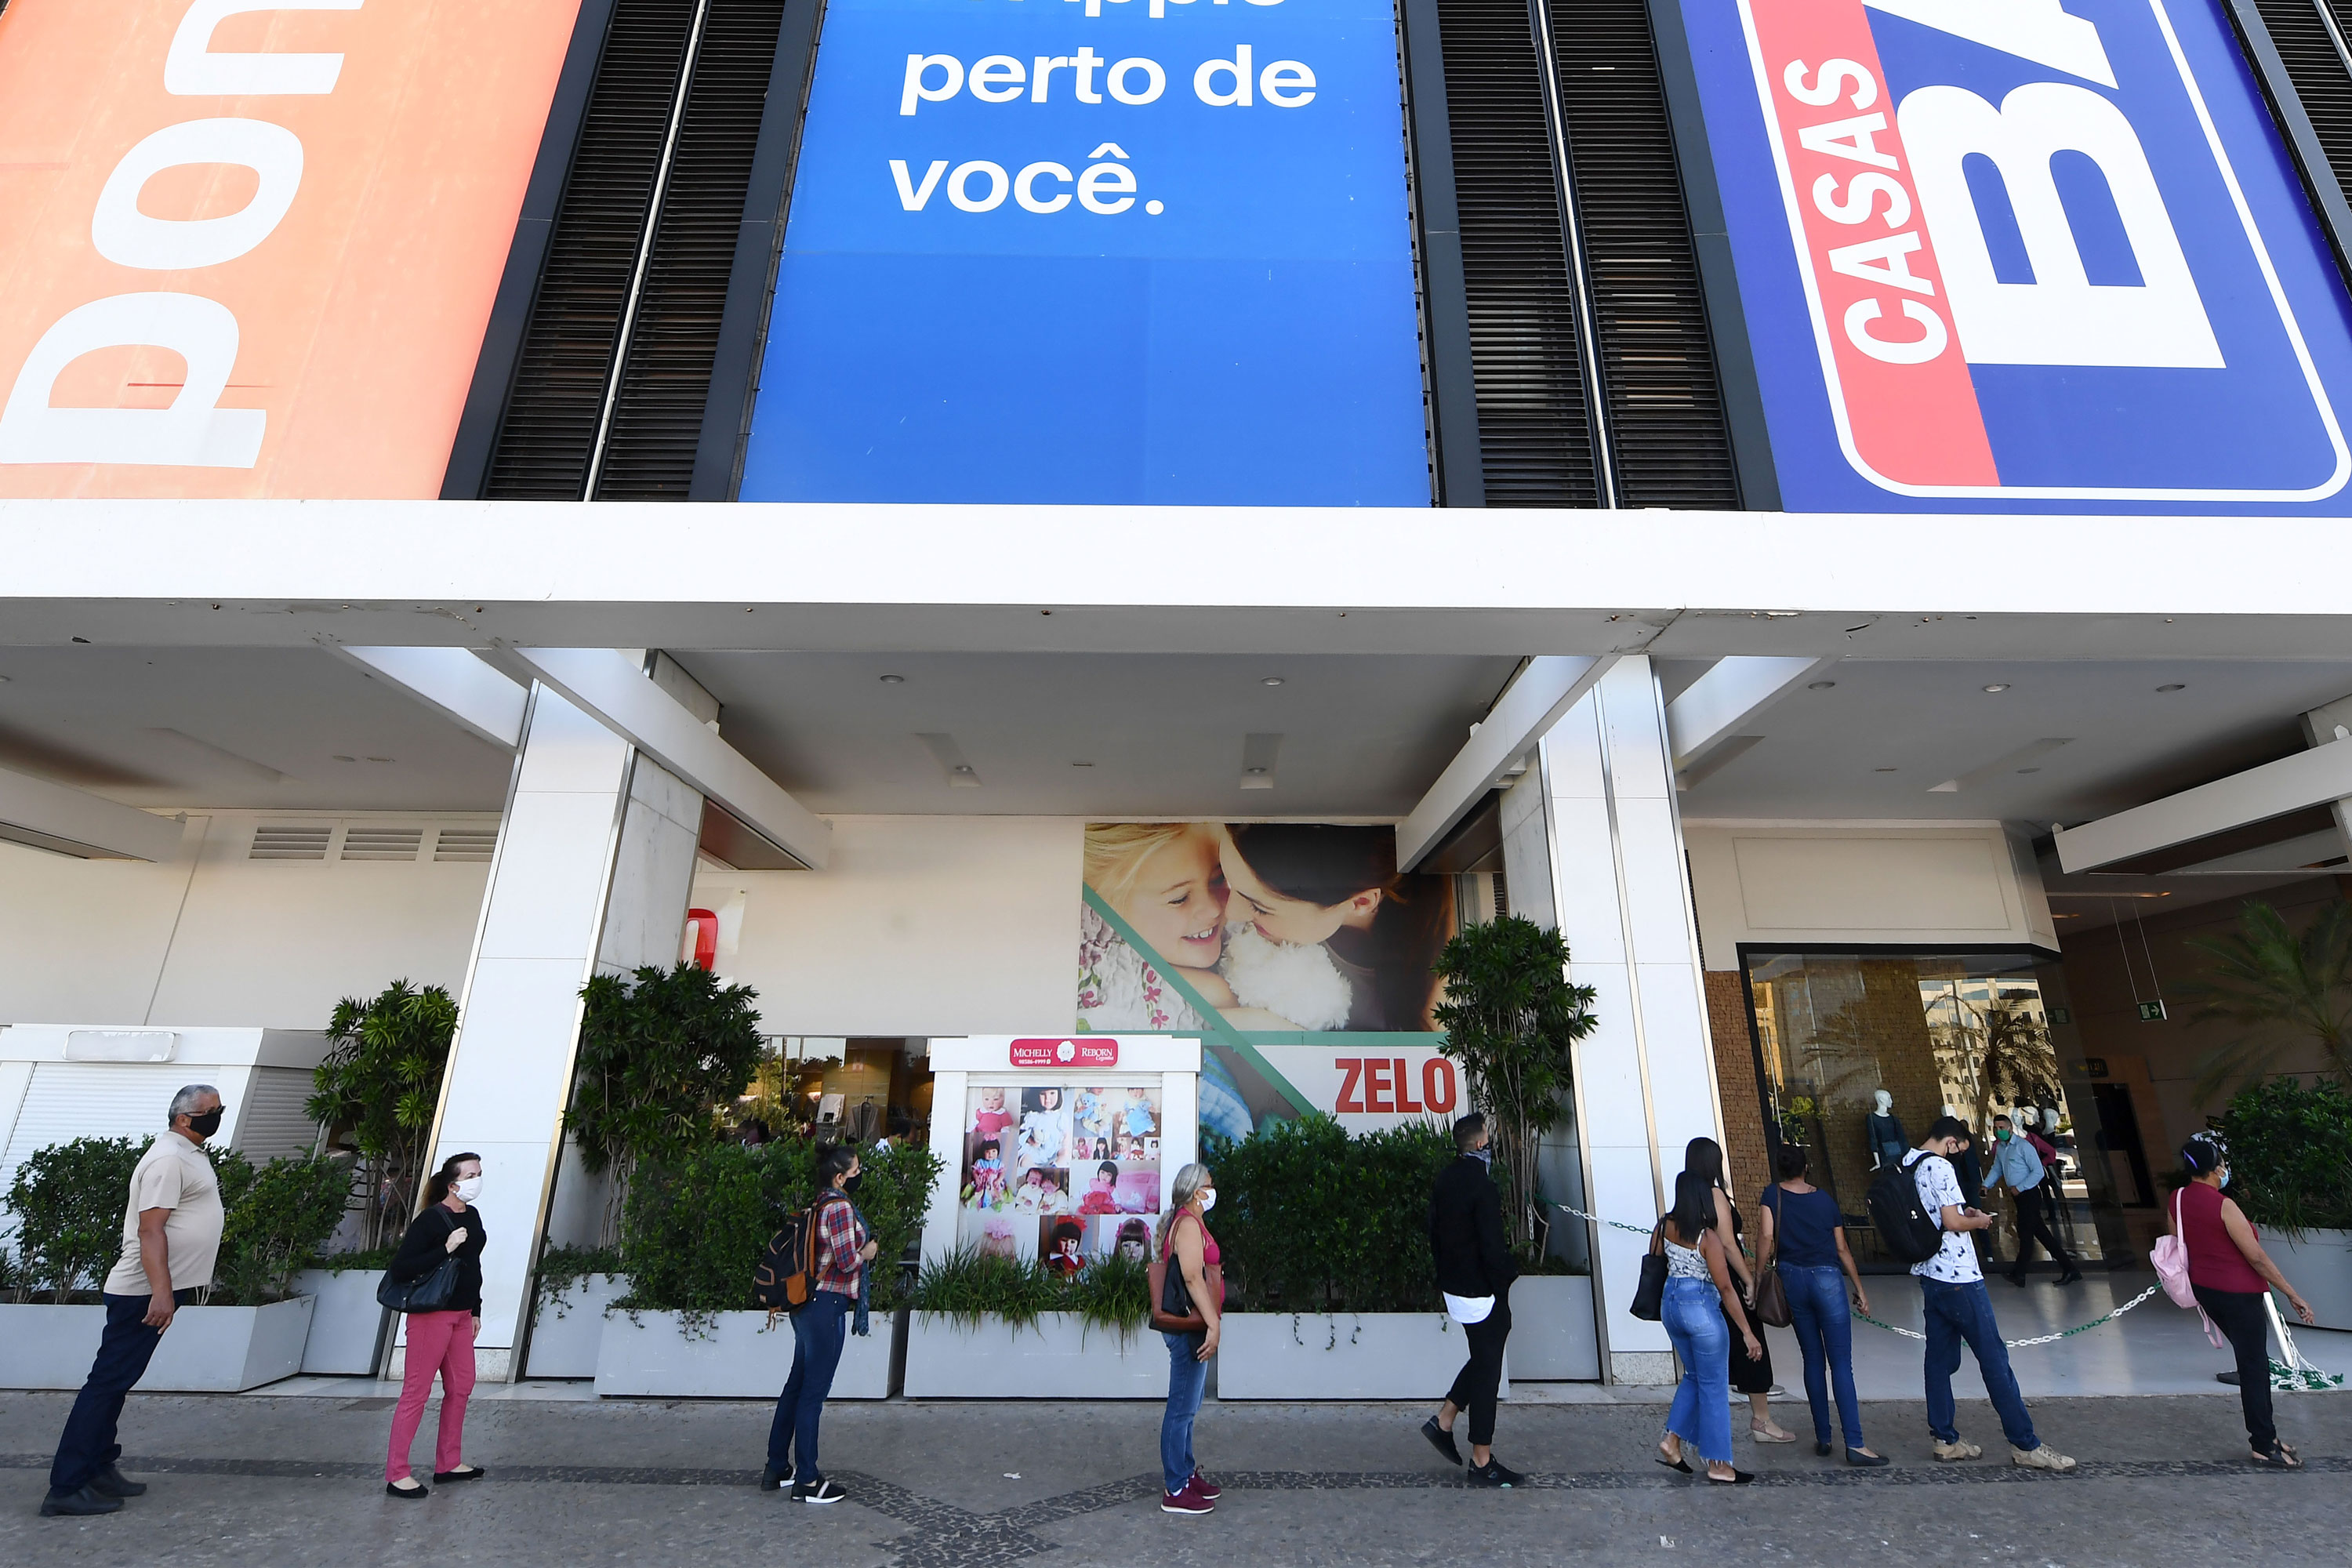 People wait in line to have their body temperature checked before entering a shopping mall in Brasilia, Brazil, on May 27.